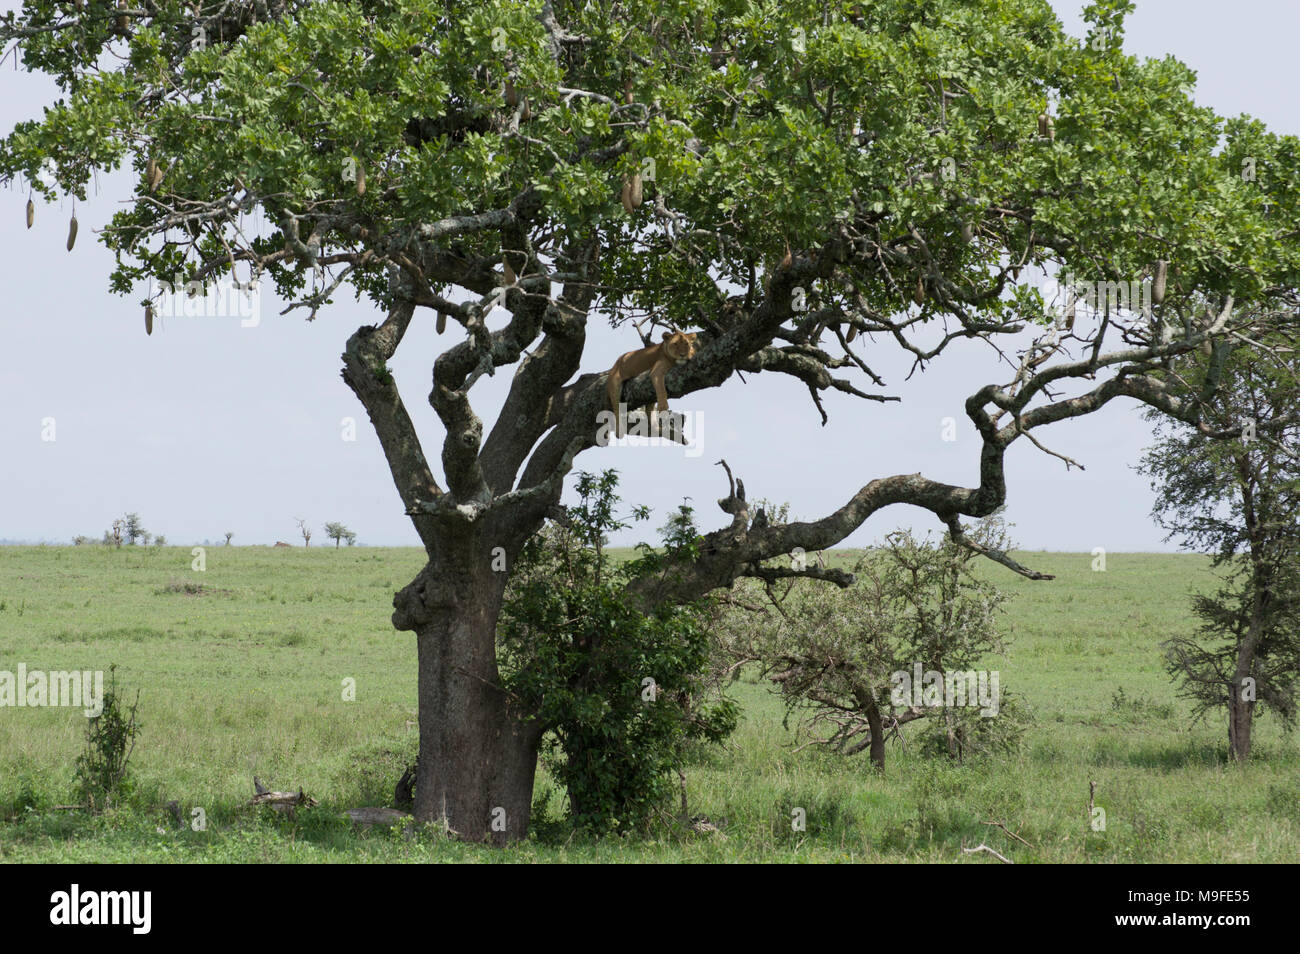 Female lion, lioness, sleeping in a sausage tree Kigelia Africana in the Serengeti Naitonal Park Tanzania her legs hanging below the branch - Stock Image